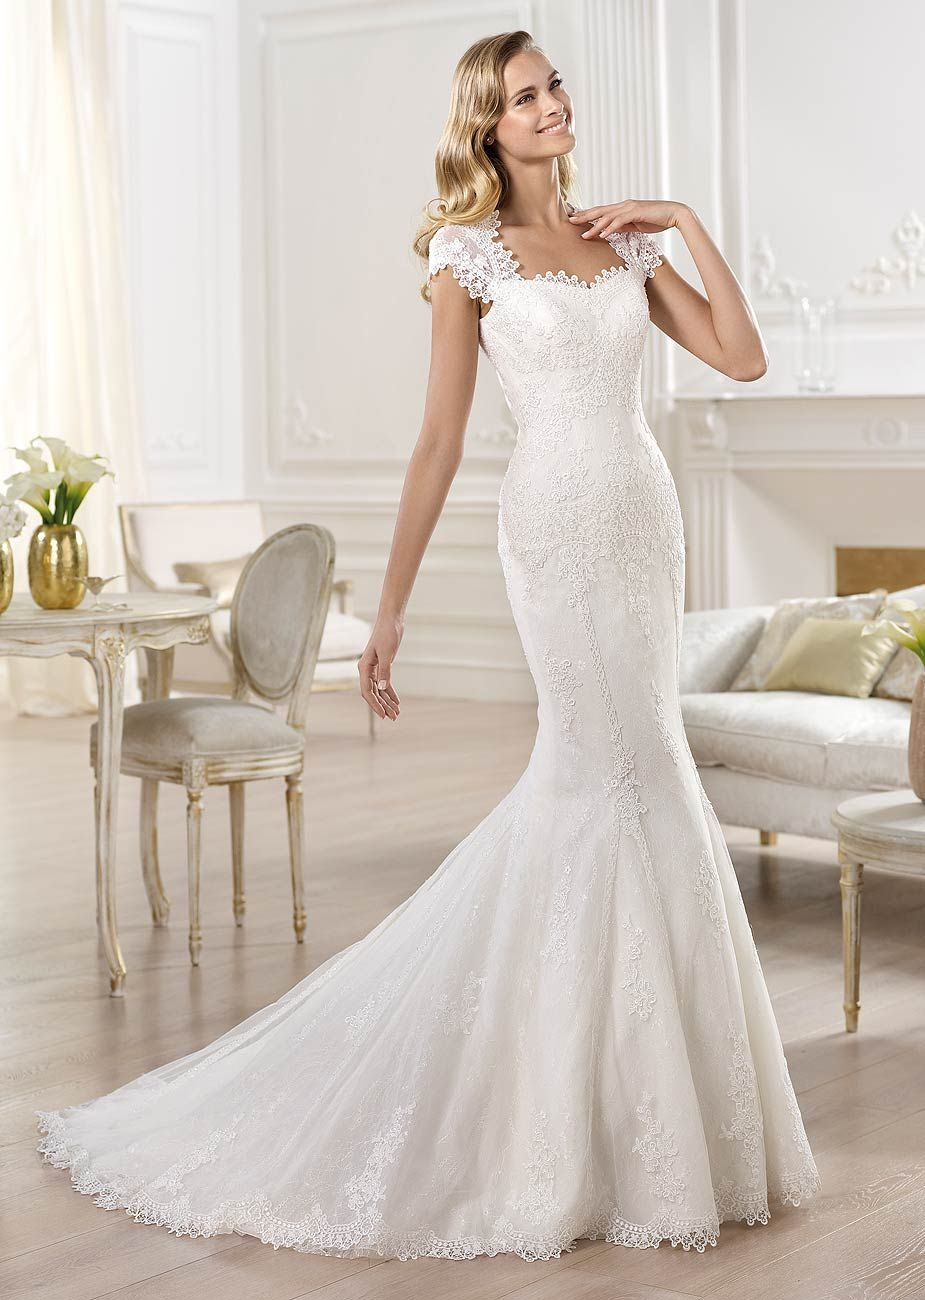 Mermaid Style Tulle And Lace Wedding Gown With A Fitted Waist That Flows To Pleated Flared Skirt Chapel Length Train This Dress Features Straight